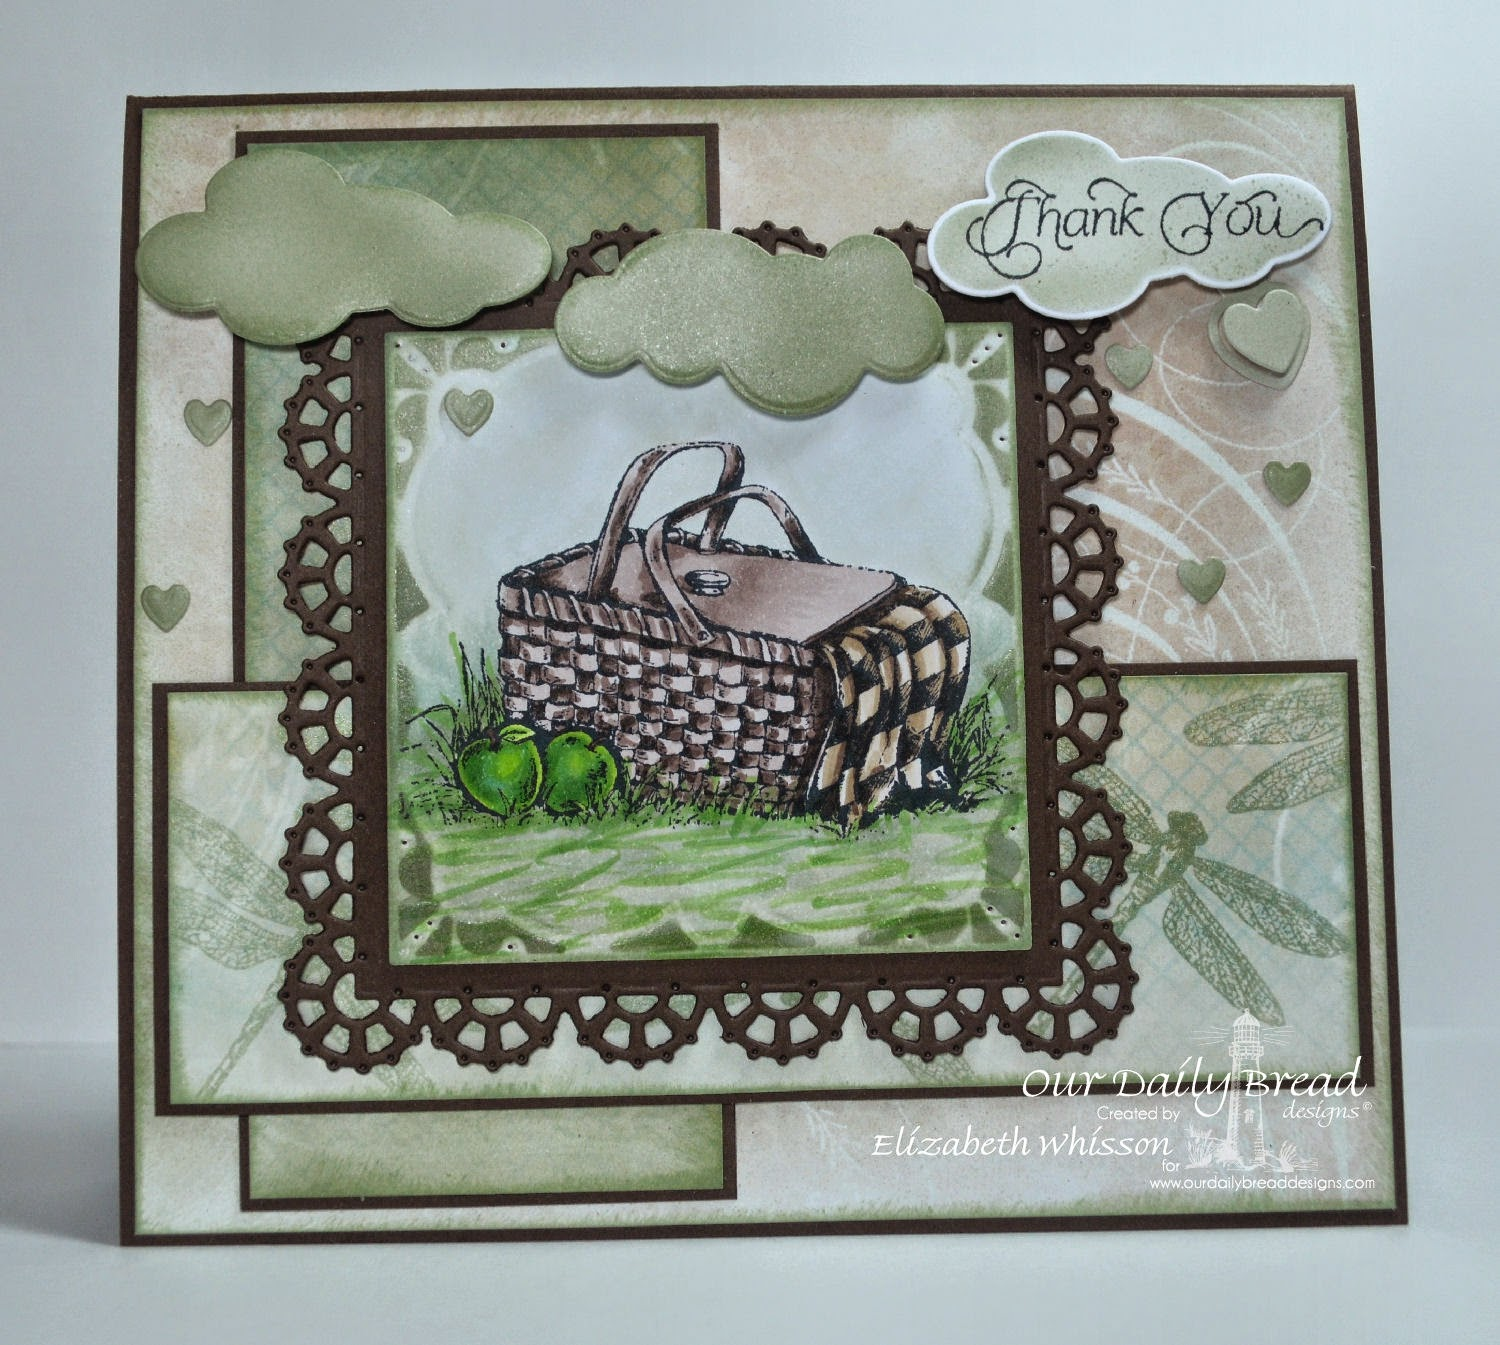 Our Daily Bread Designs, Thank you, Dragonfly Mini, ODBD Layered Lacey Squares Dies, ODBD Clouds and Raindrops Dies, ODBD Mini Tags Dies, ODBD Shabby Rose Paper Collection, Designed by Elizabeth Whisson, Copics, picnic, apples